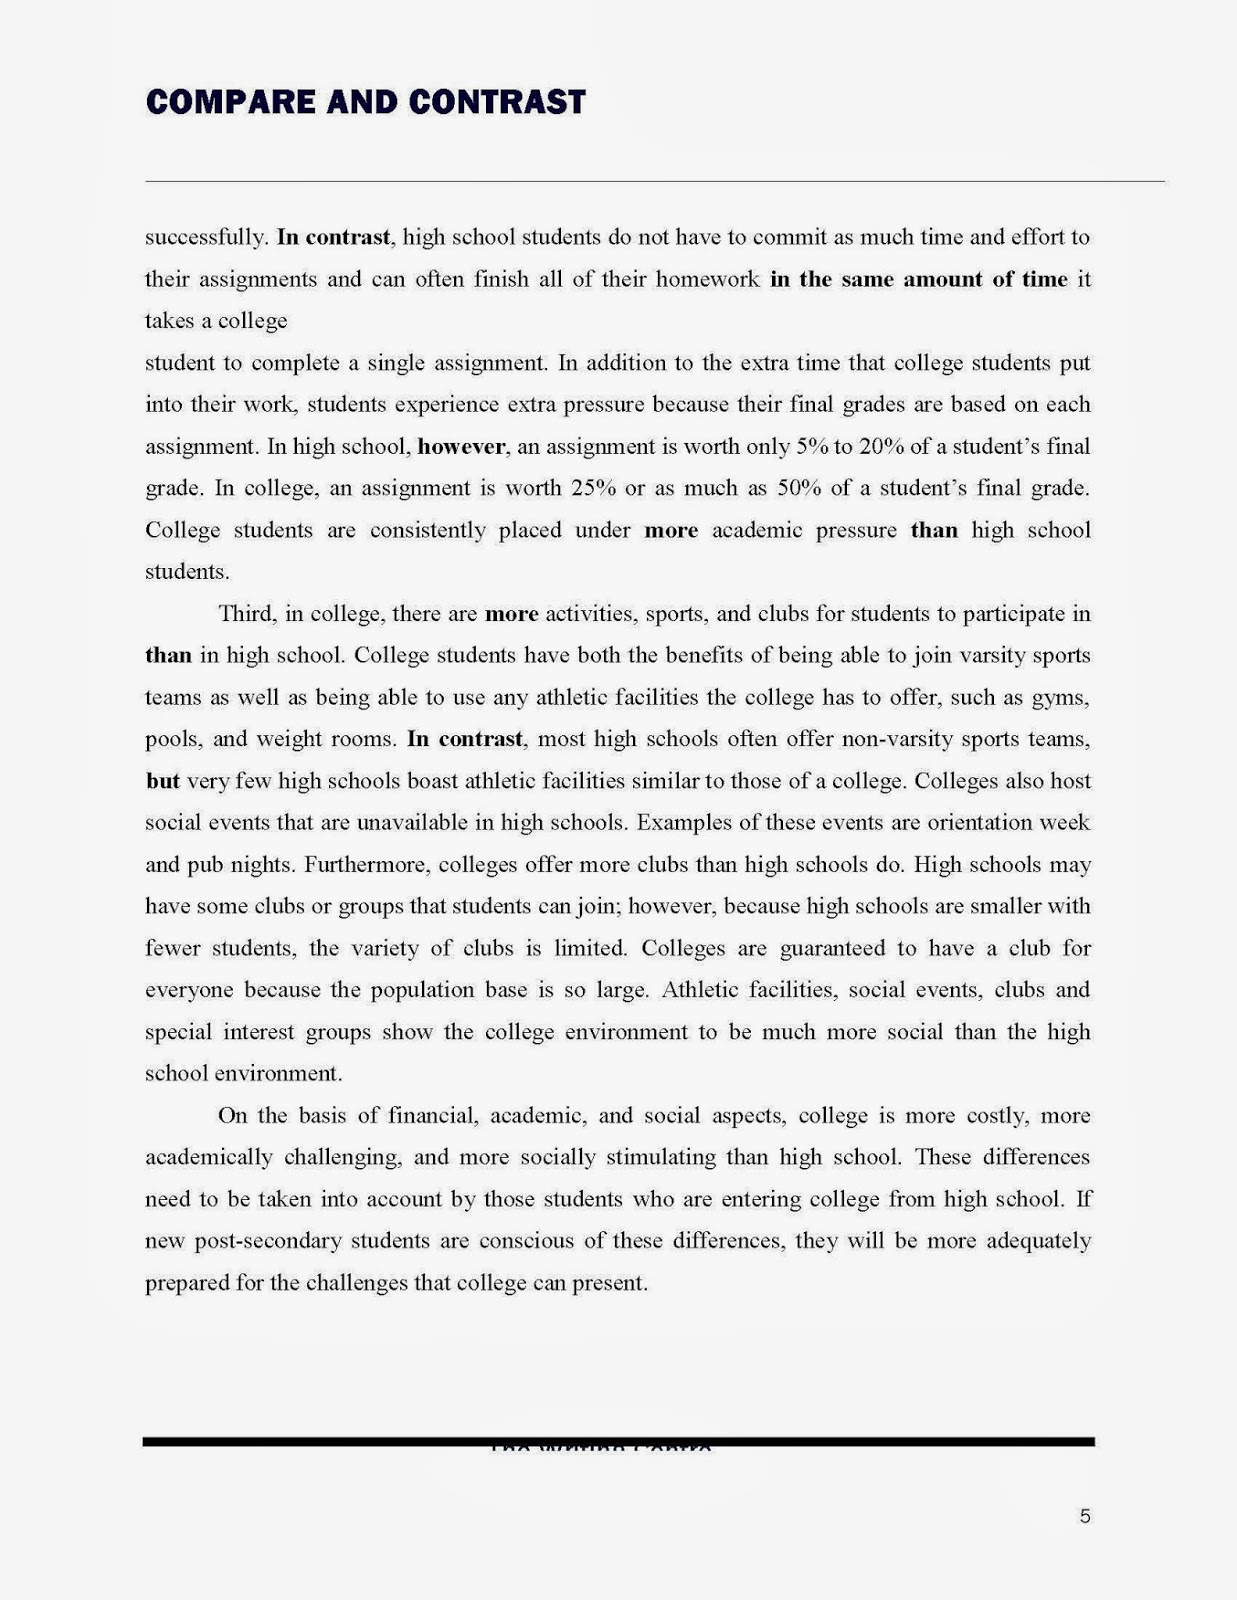 book essay essay on the giver how to quote in an essay book essay  essay on the giver essay on the giver by lois lowry essay on the book the